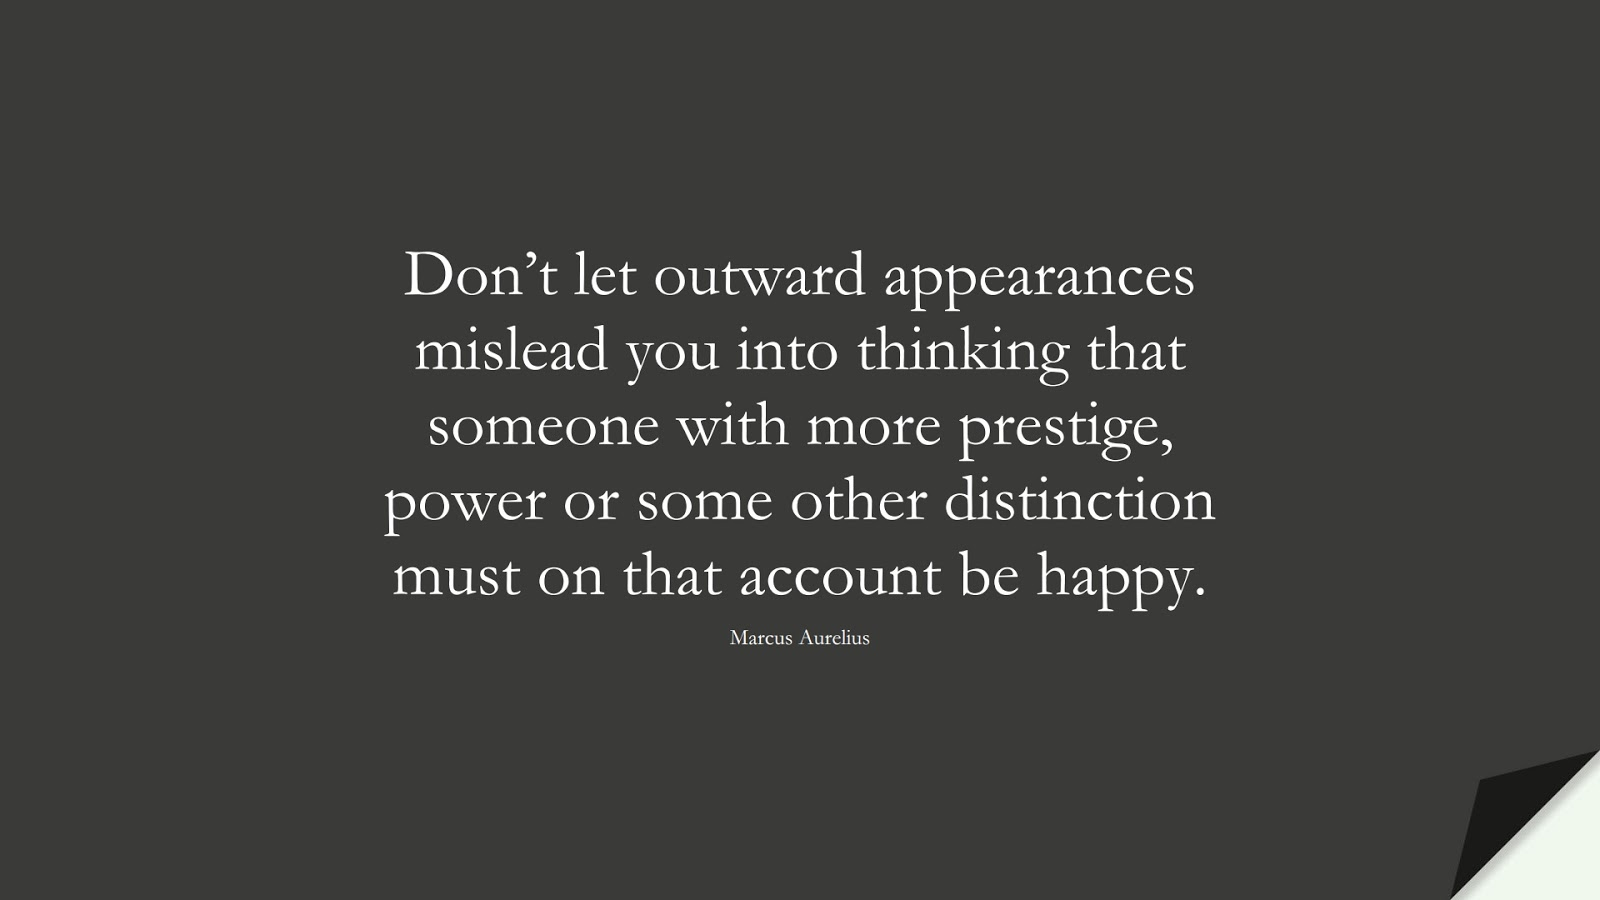 Don't let outward appearances mislead you into thinking that someone with more prestige, power or some other distinction must on that account be happy. (Marcus Aurelius);  #MarcusAureliusQuotes